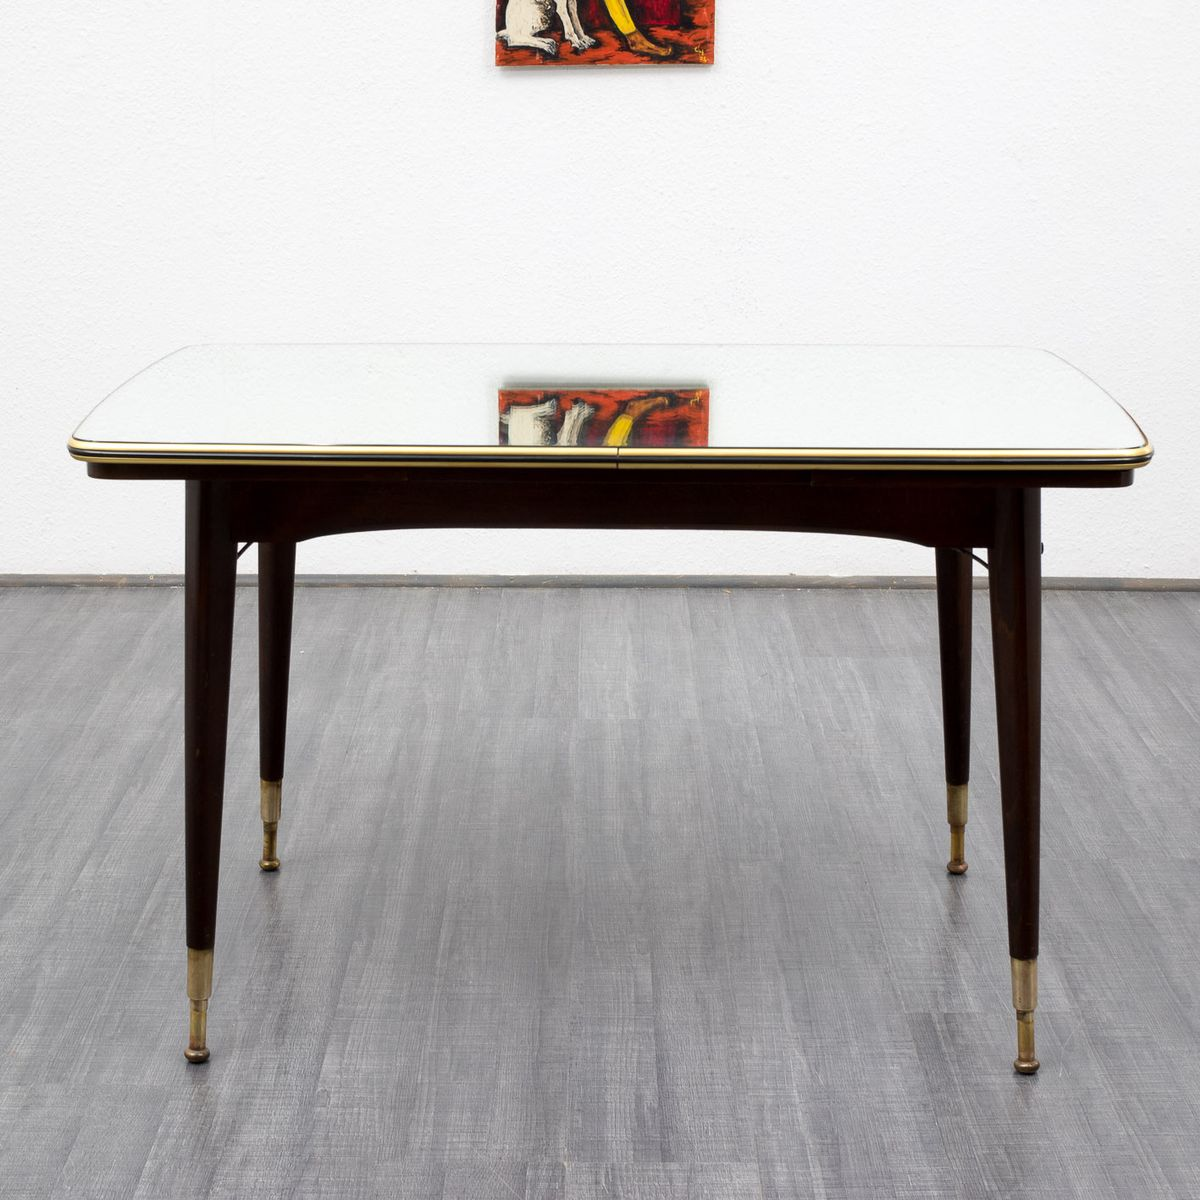 Mirrored Coffee Table Sale: Vintage Coffee Table With Mirrored Surface, 1950s For Sale